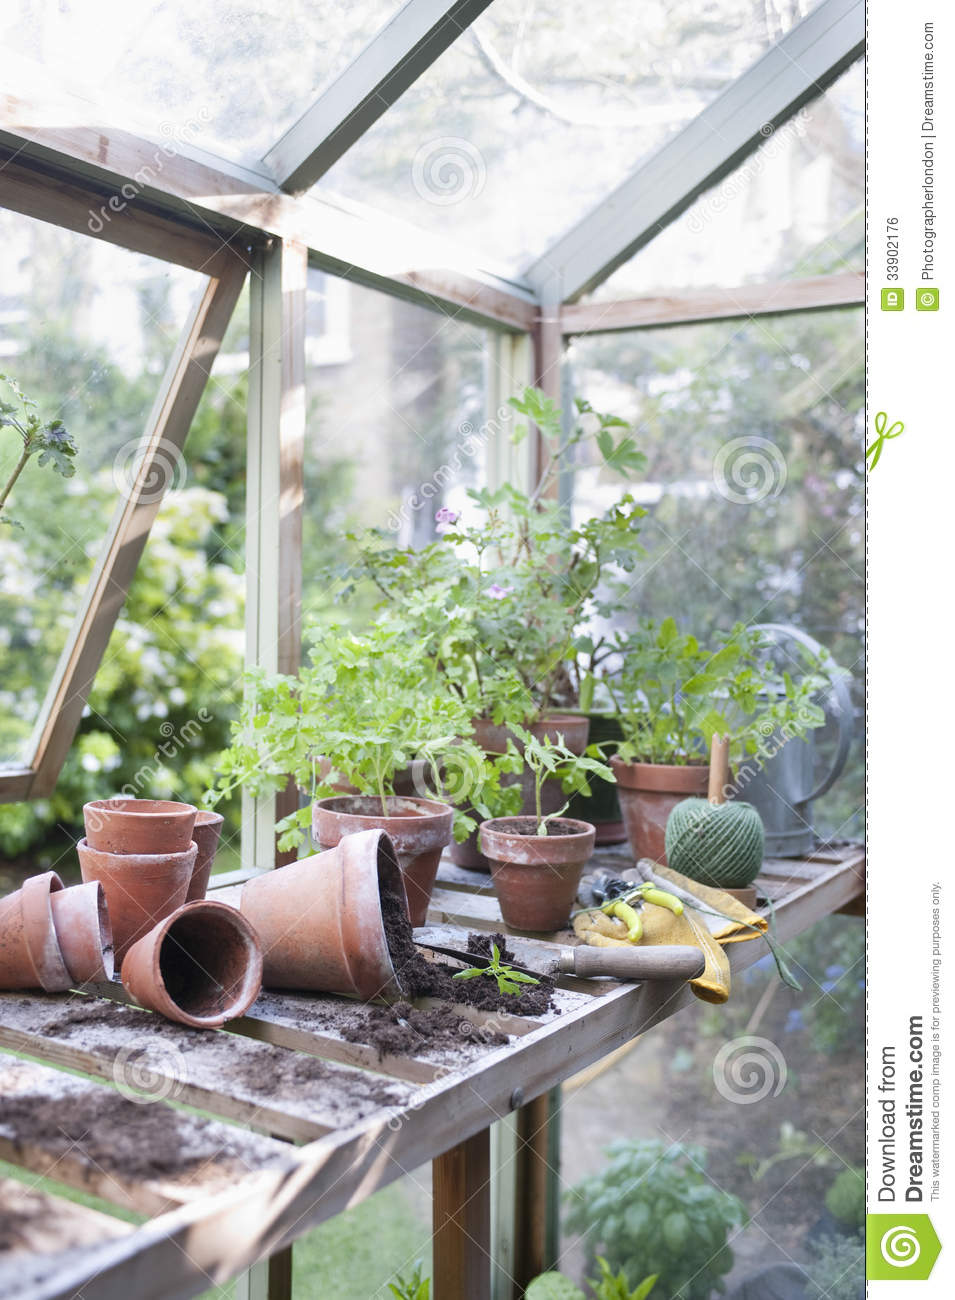 overturned pots in greenhouse stock photo - image: 33902176